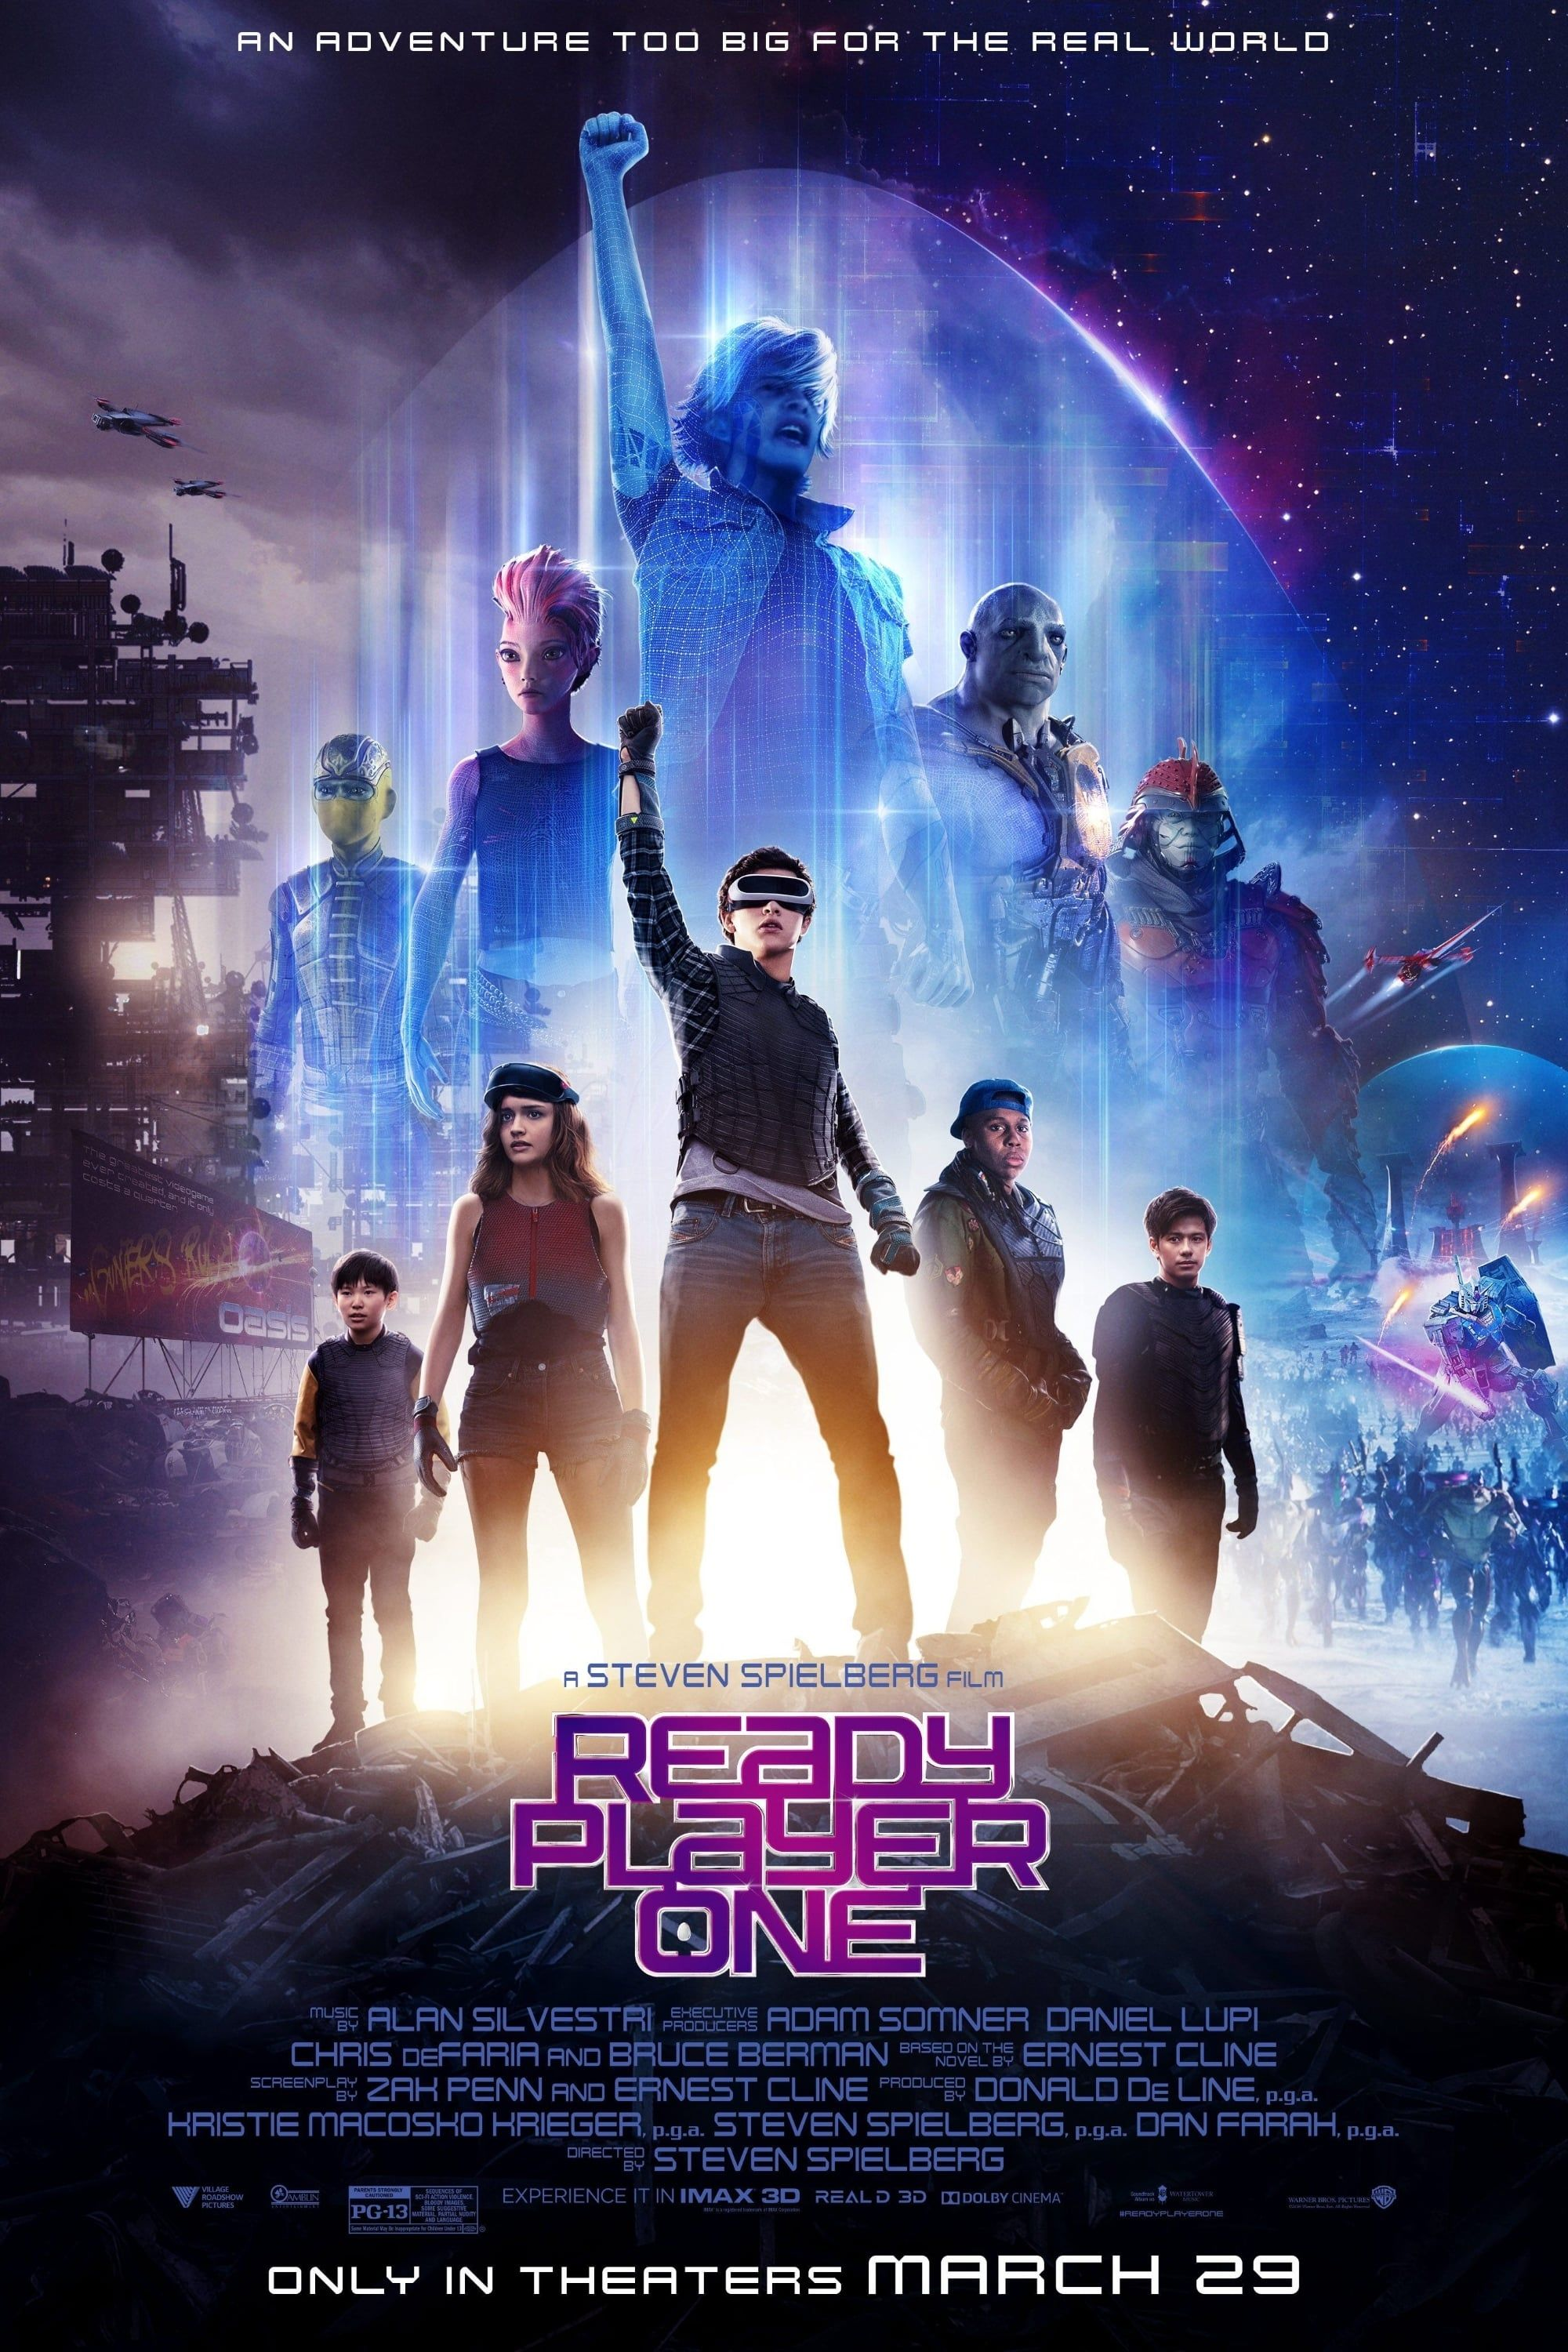 Ready Player One 2018 In 2020 Ready Player One Movie Ready Player One Player One